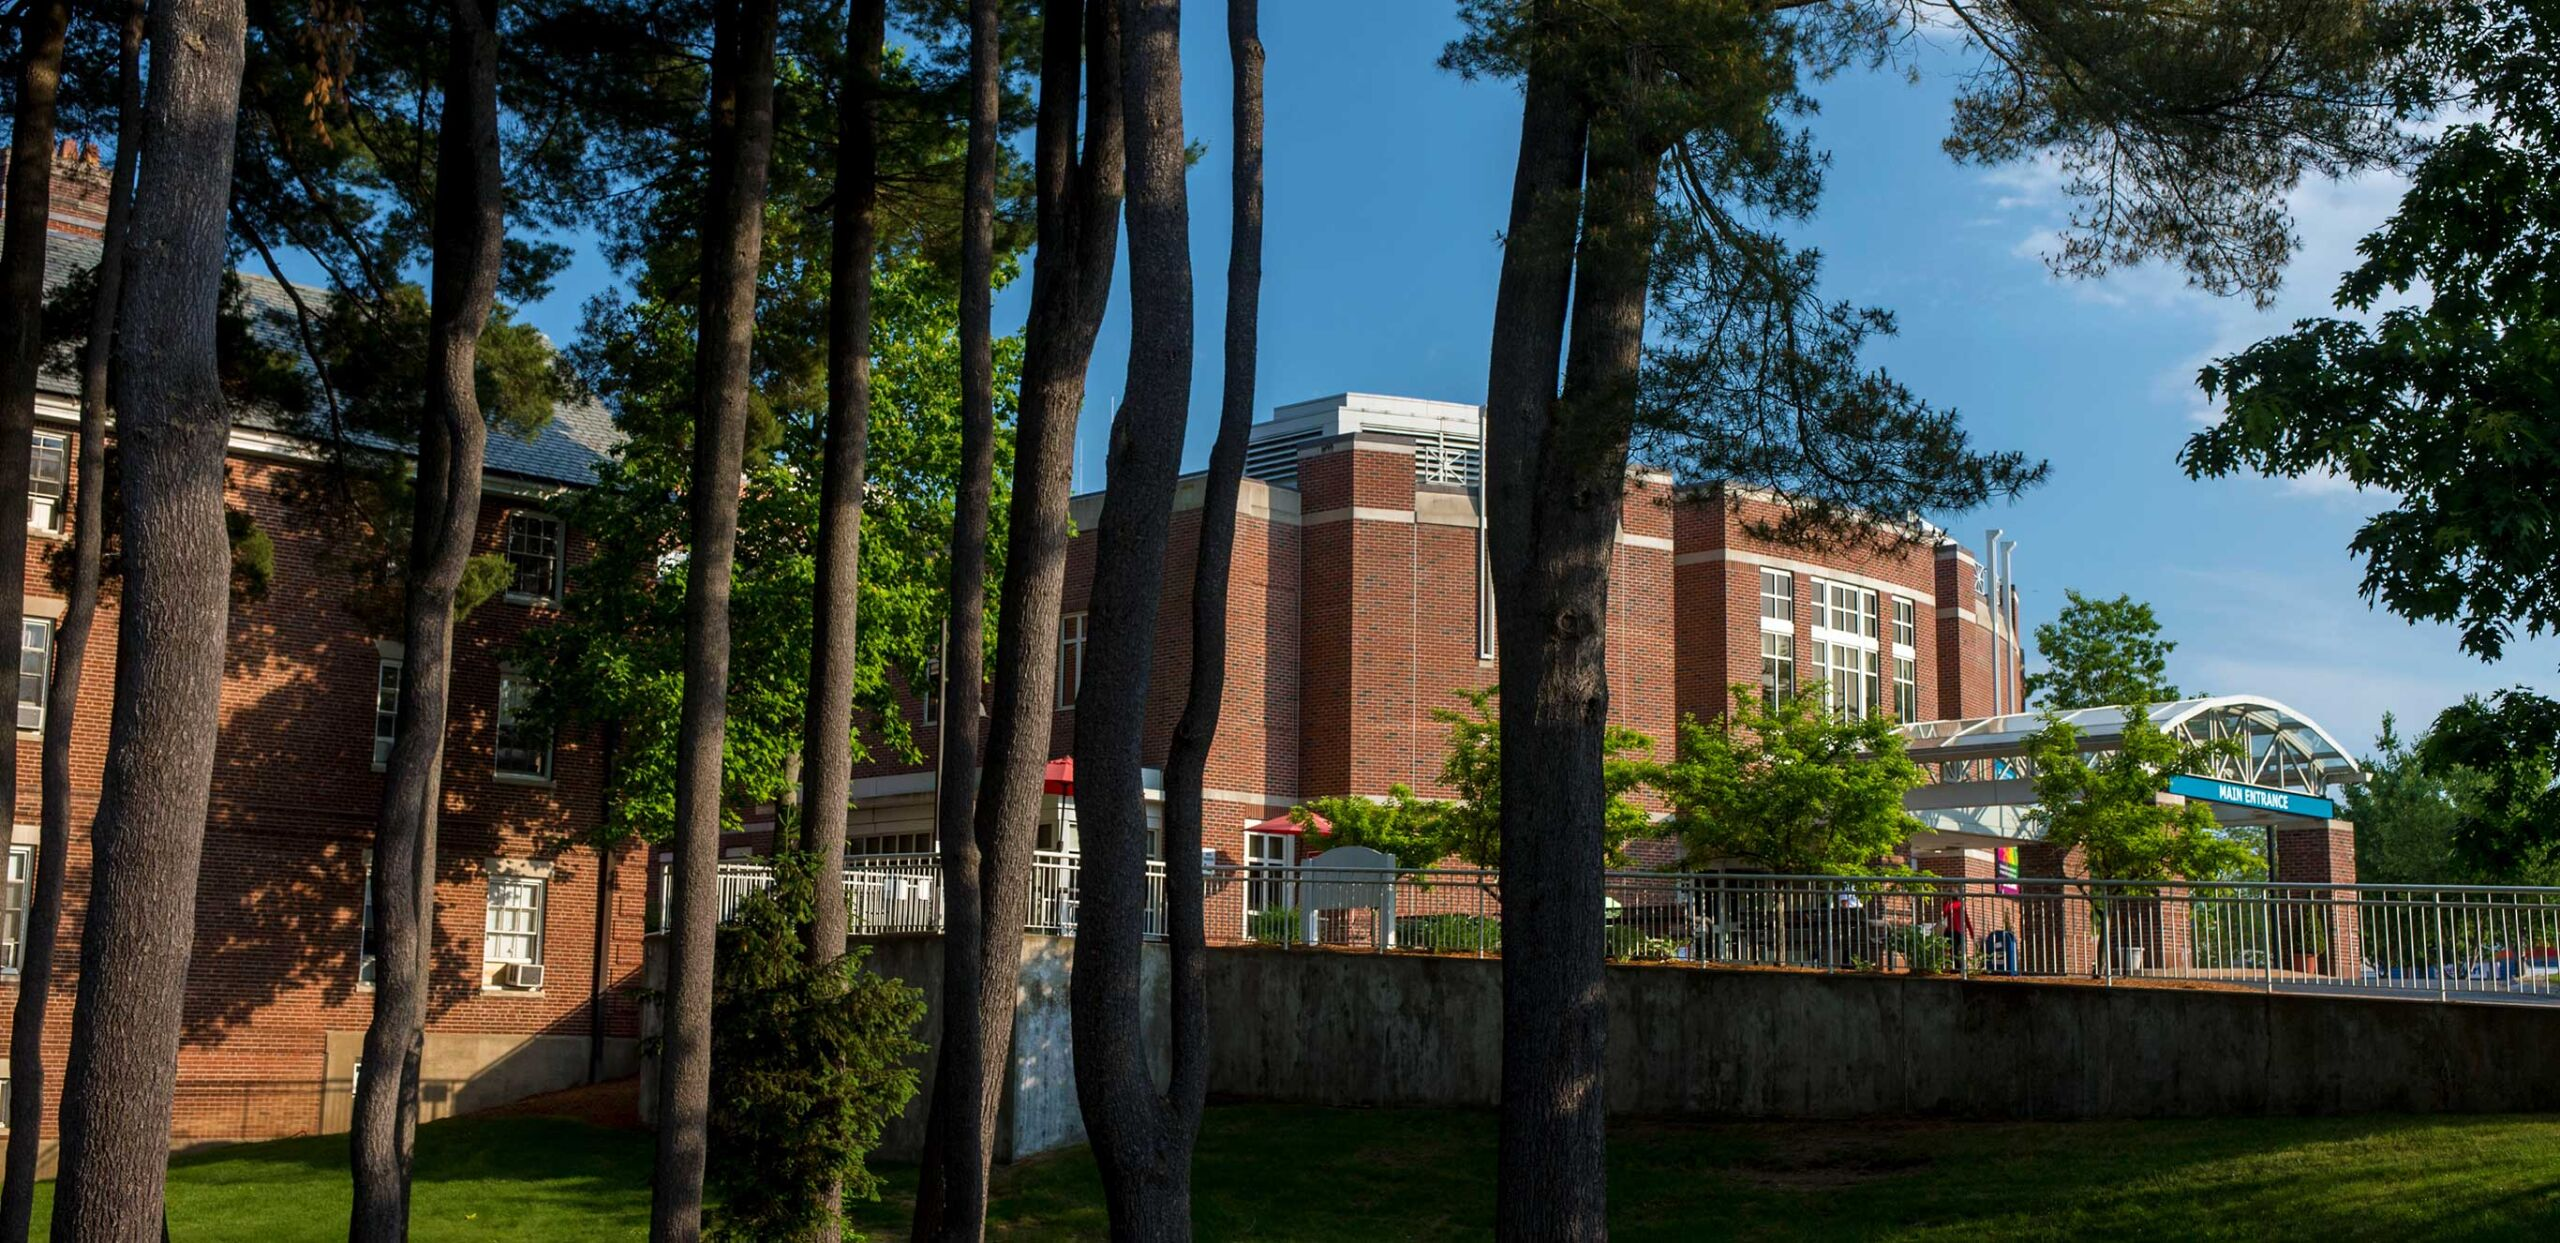 Tall pines at Cooley Dickinson Hospital